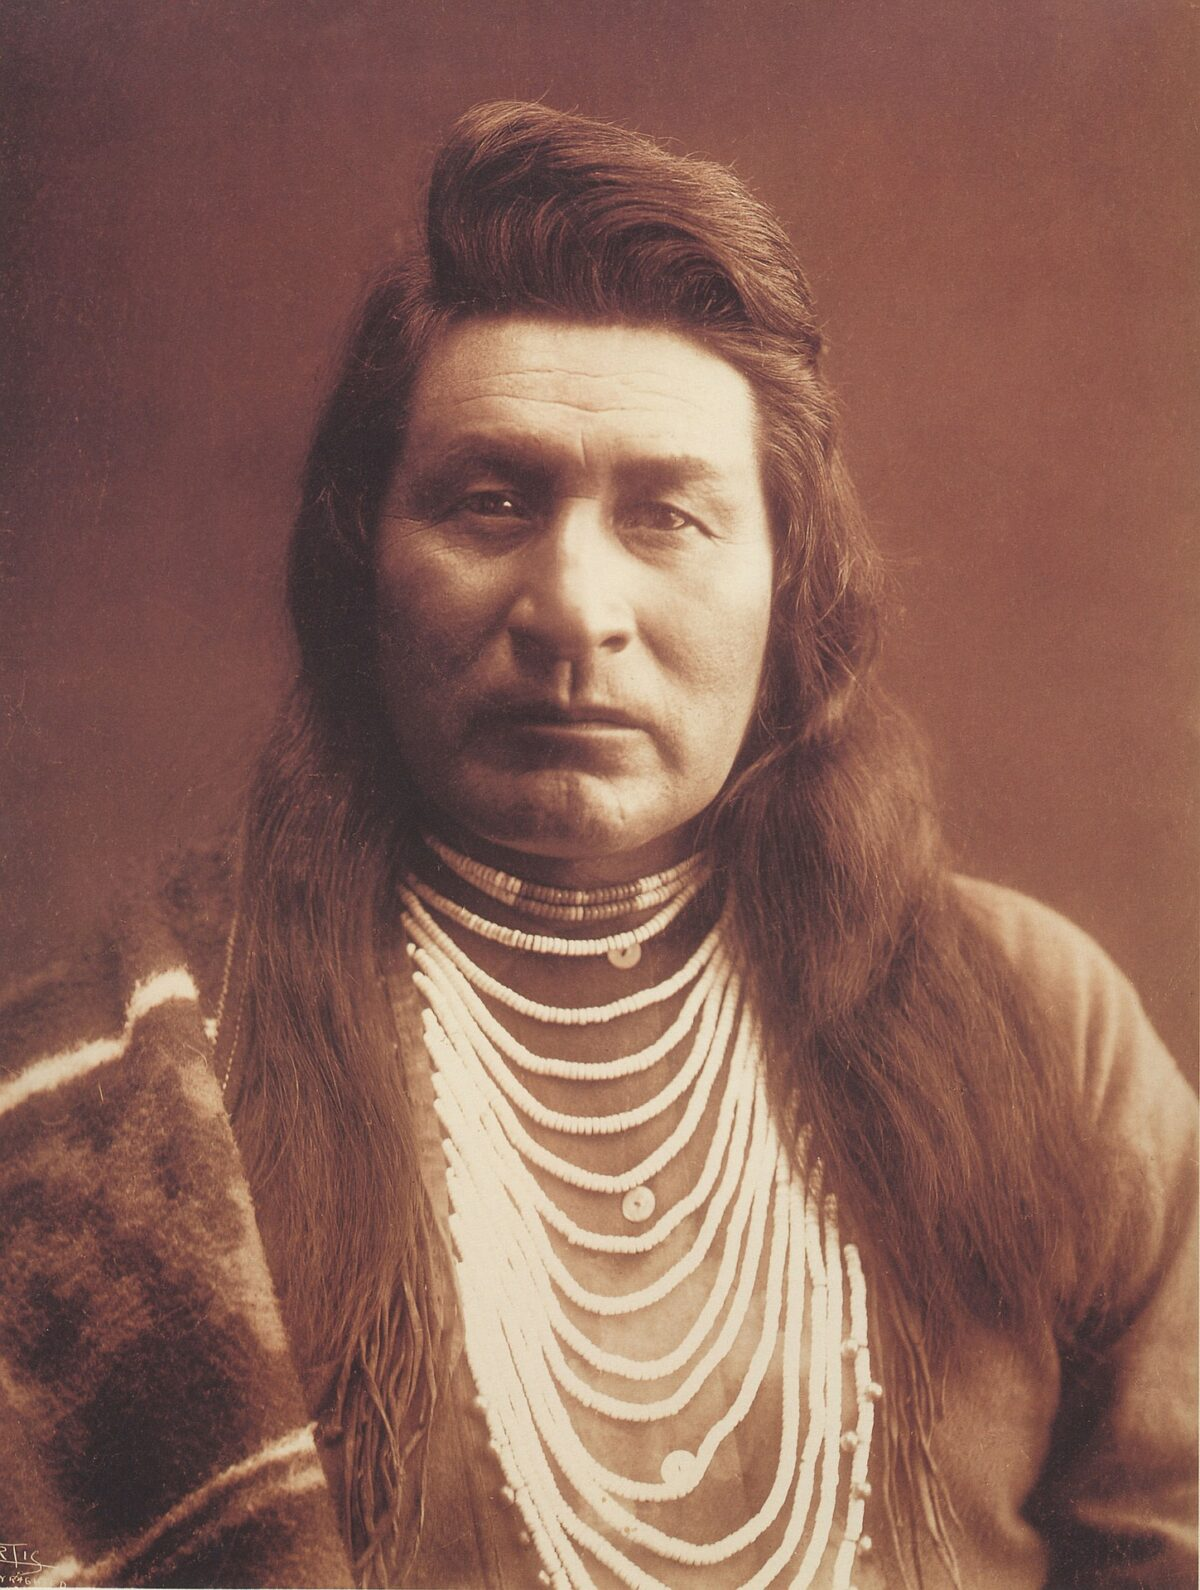 It's National Native American Heritage Day on November 27th